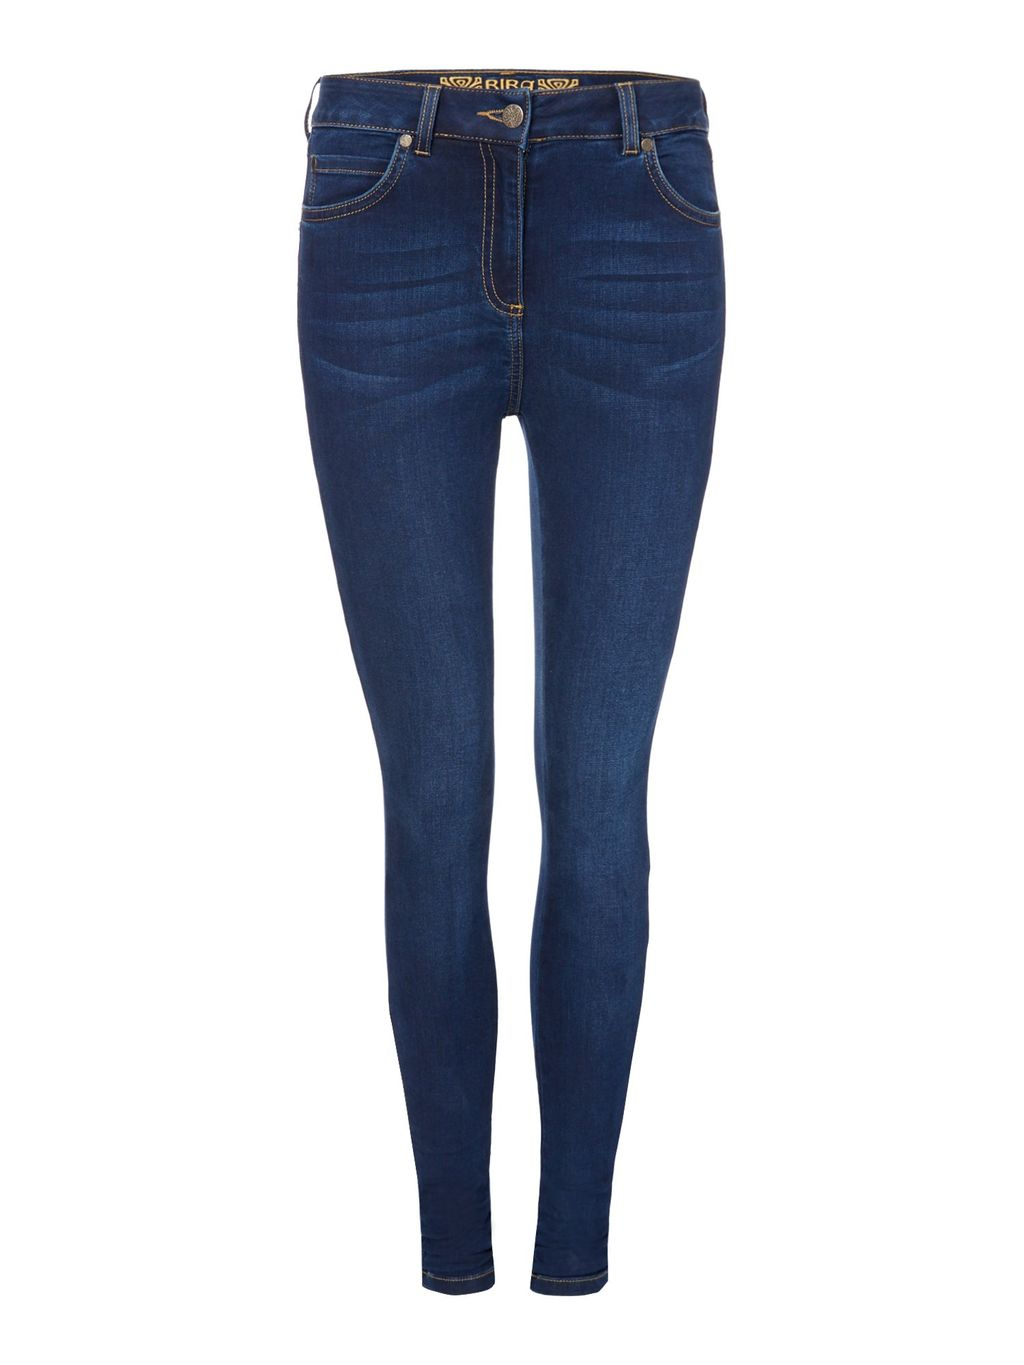 Stevie Blue Wash Super Stretch Skinny Jean, Blue - style: skinny leg; pattern: plain; waist: low rise; predominant colour: navy; occasions: casual, creative work; length: ankle length; fibres: cotton - mix; jeans detail: dark wash; texture group: denim; pattern type: fabric; season: s/s 2016; wardrobe: basic